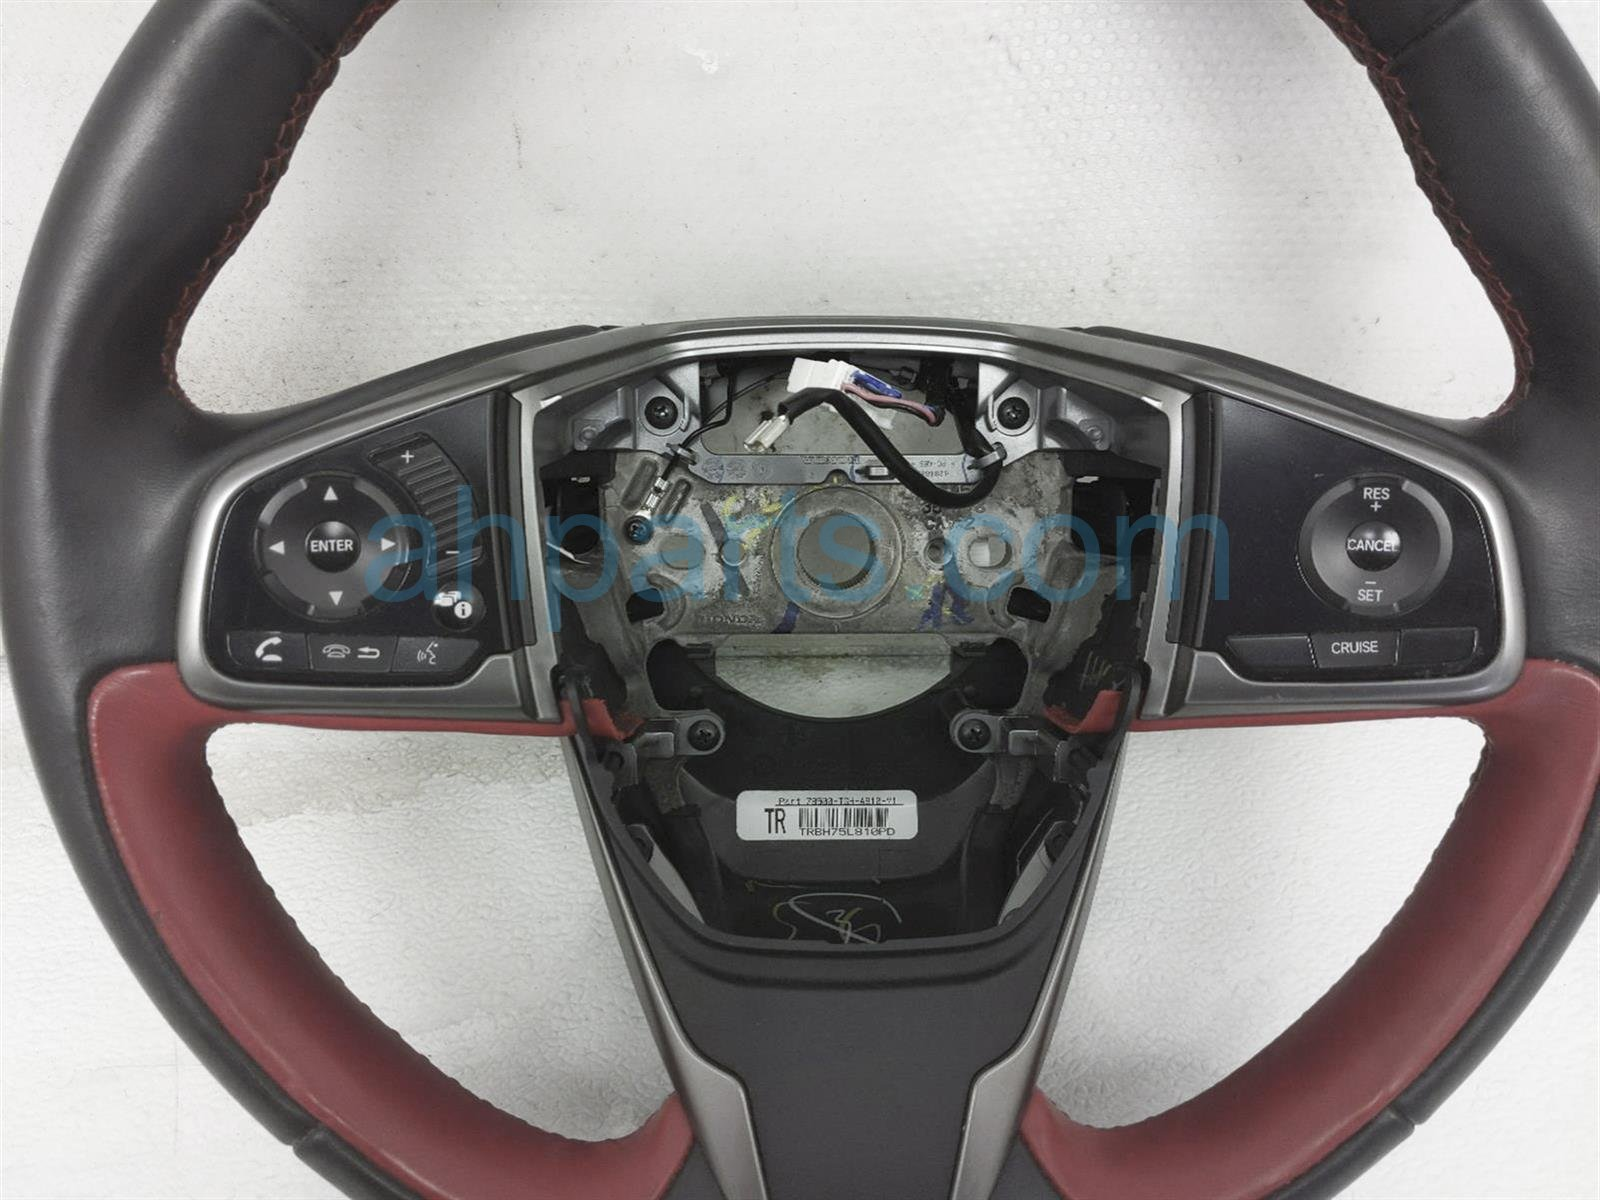 2018 Honda Civic Steering Wheel Type R Fk8 78501 TGH A90ZA Replacement